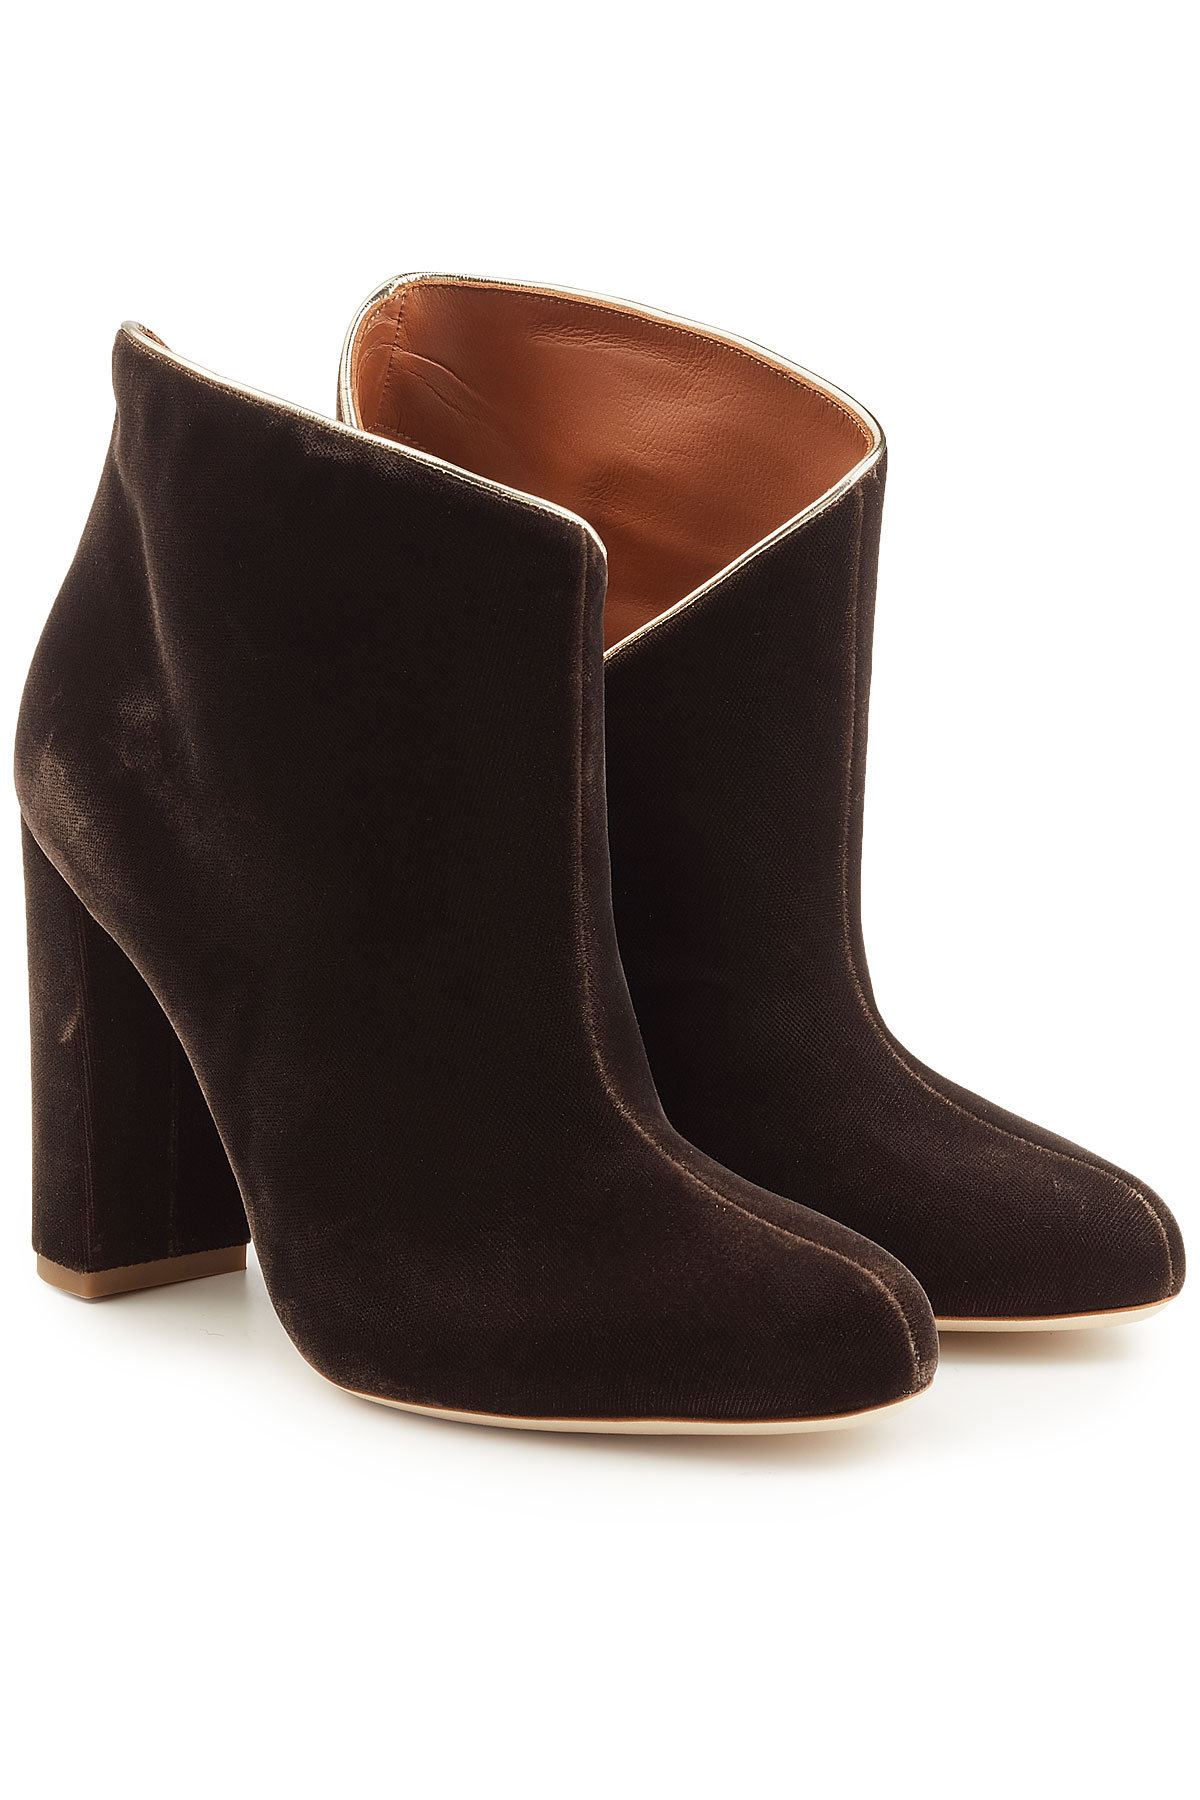 Roksanda Leather Ankle Boots Gr. EU 38 0nfw3